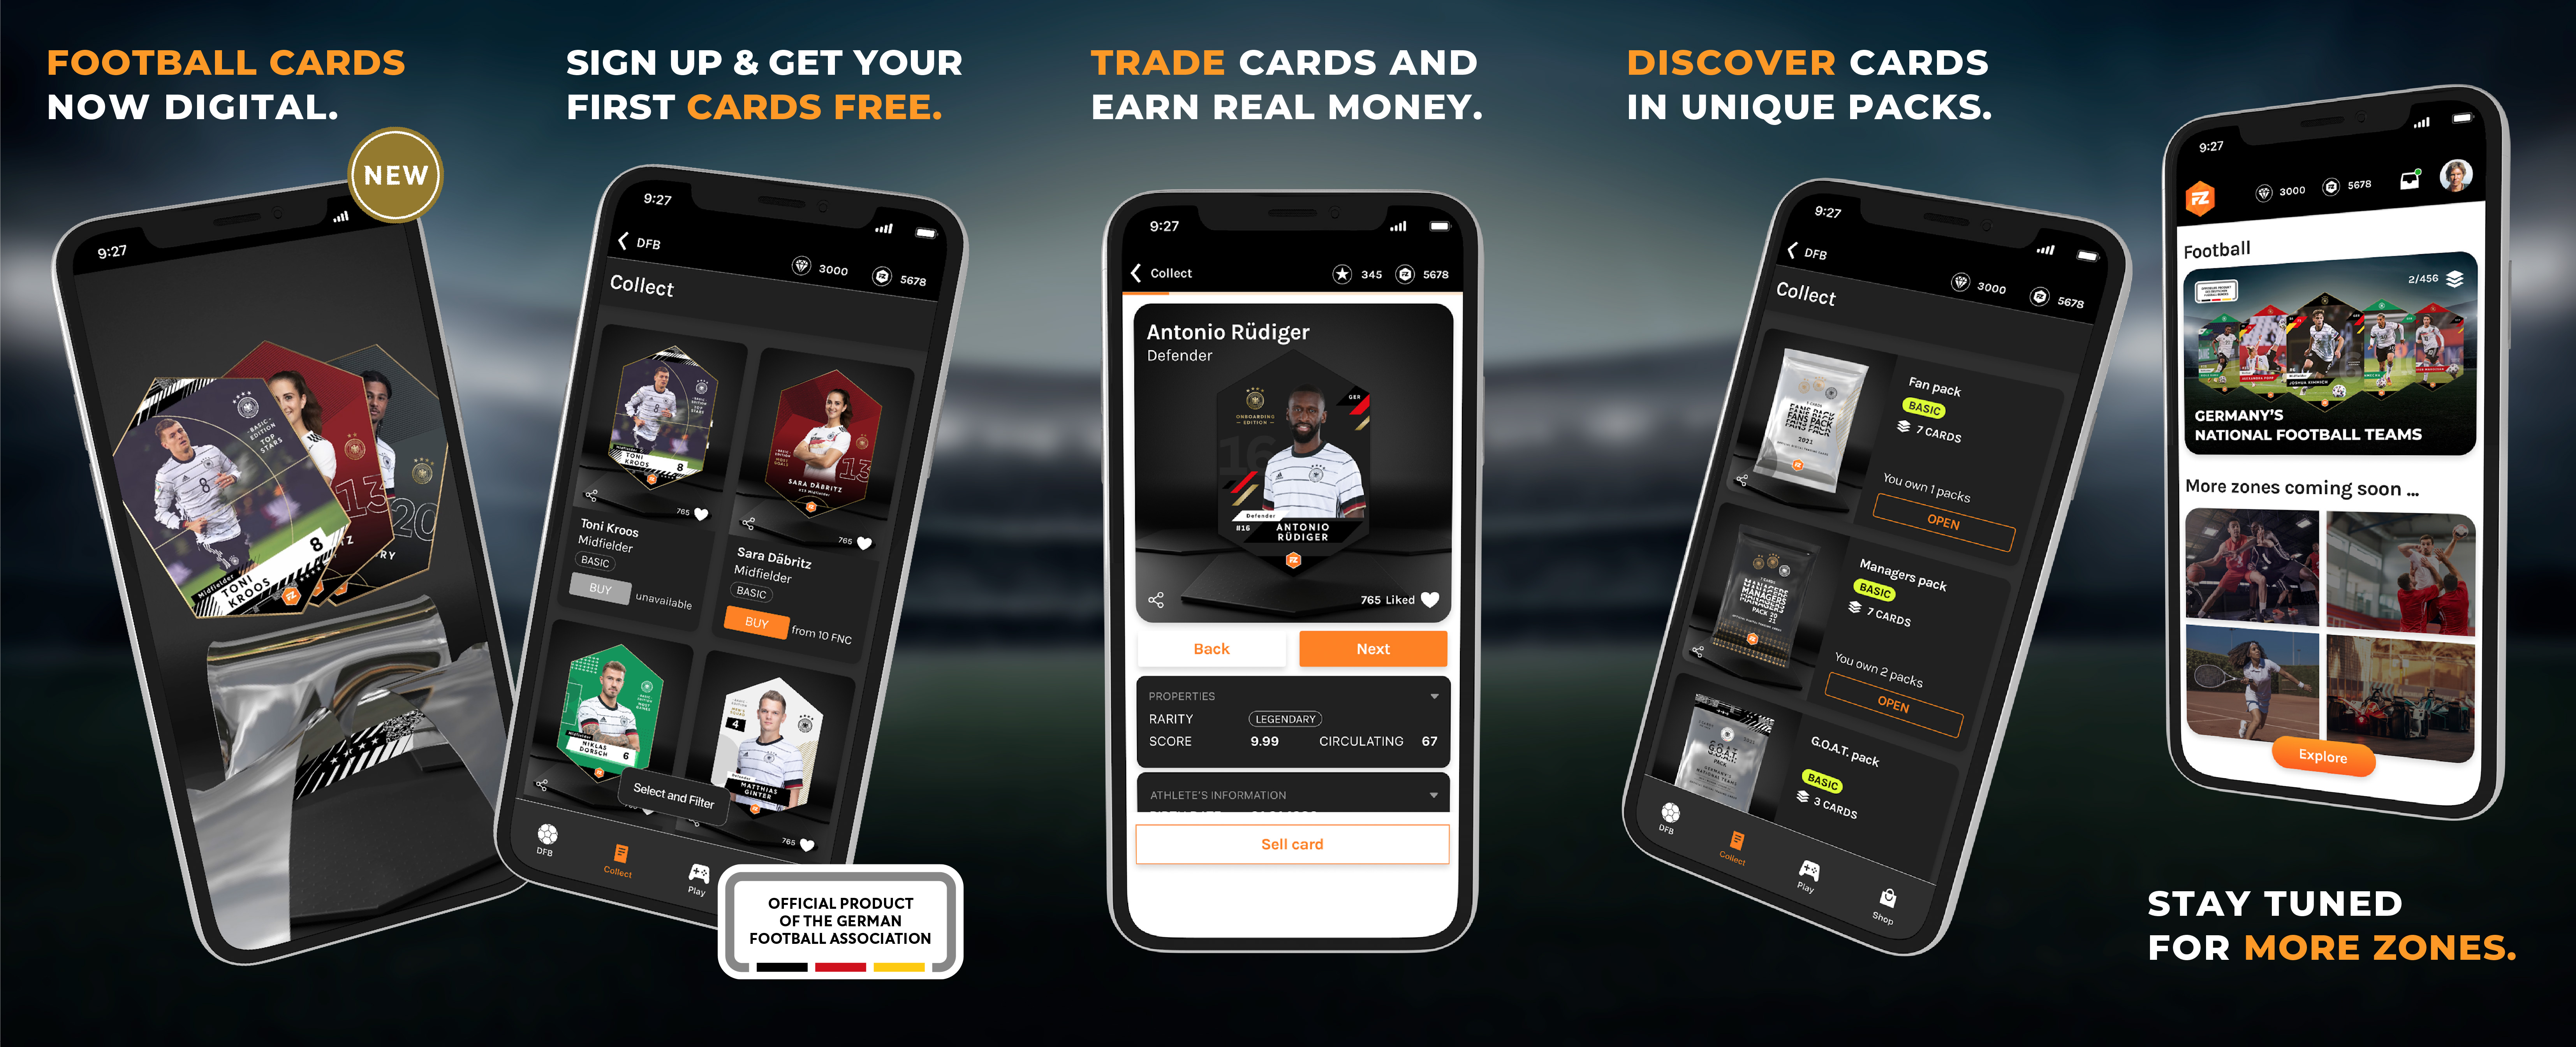 Blockchain platform for trading cards – Forward31 launches start-up Fanzone